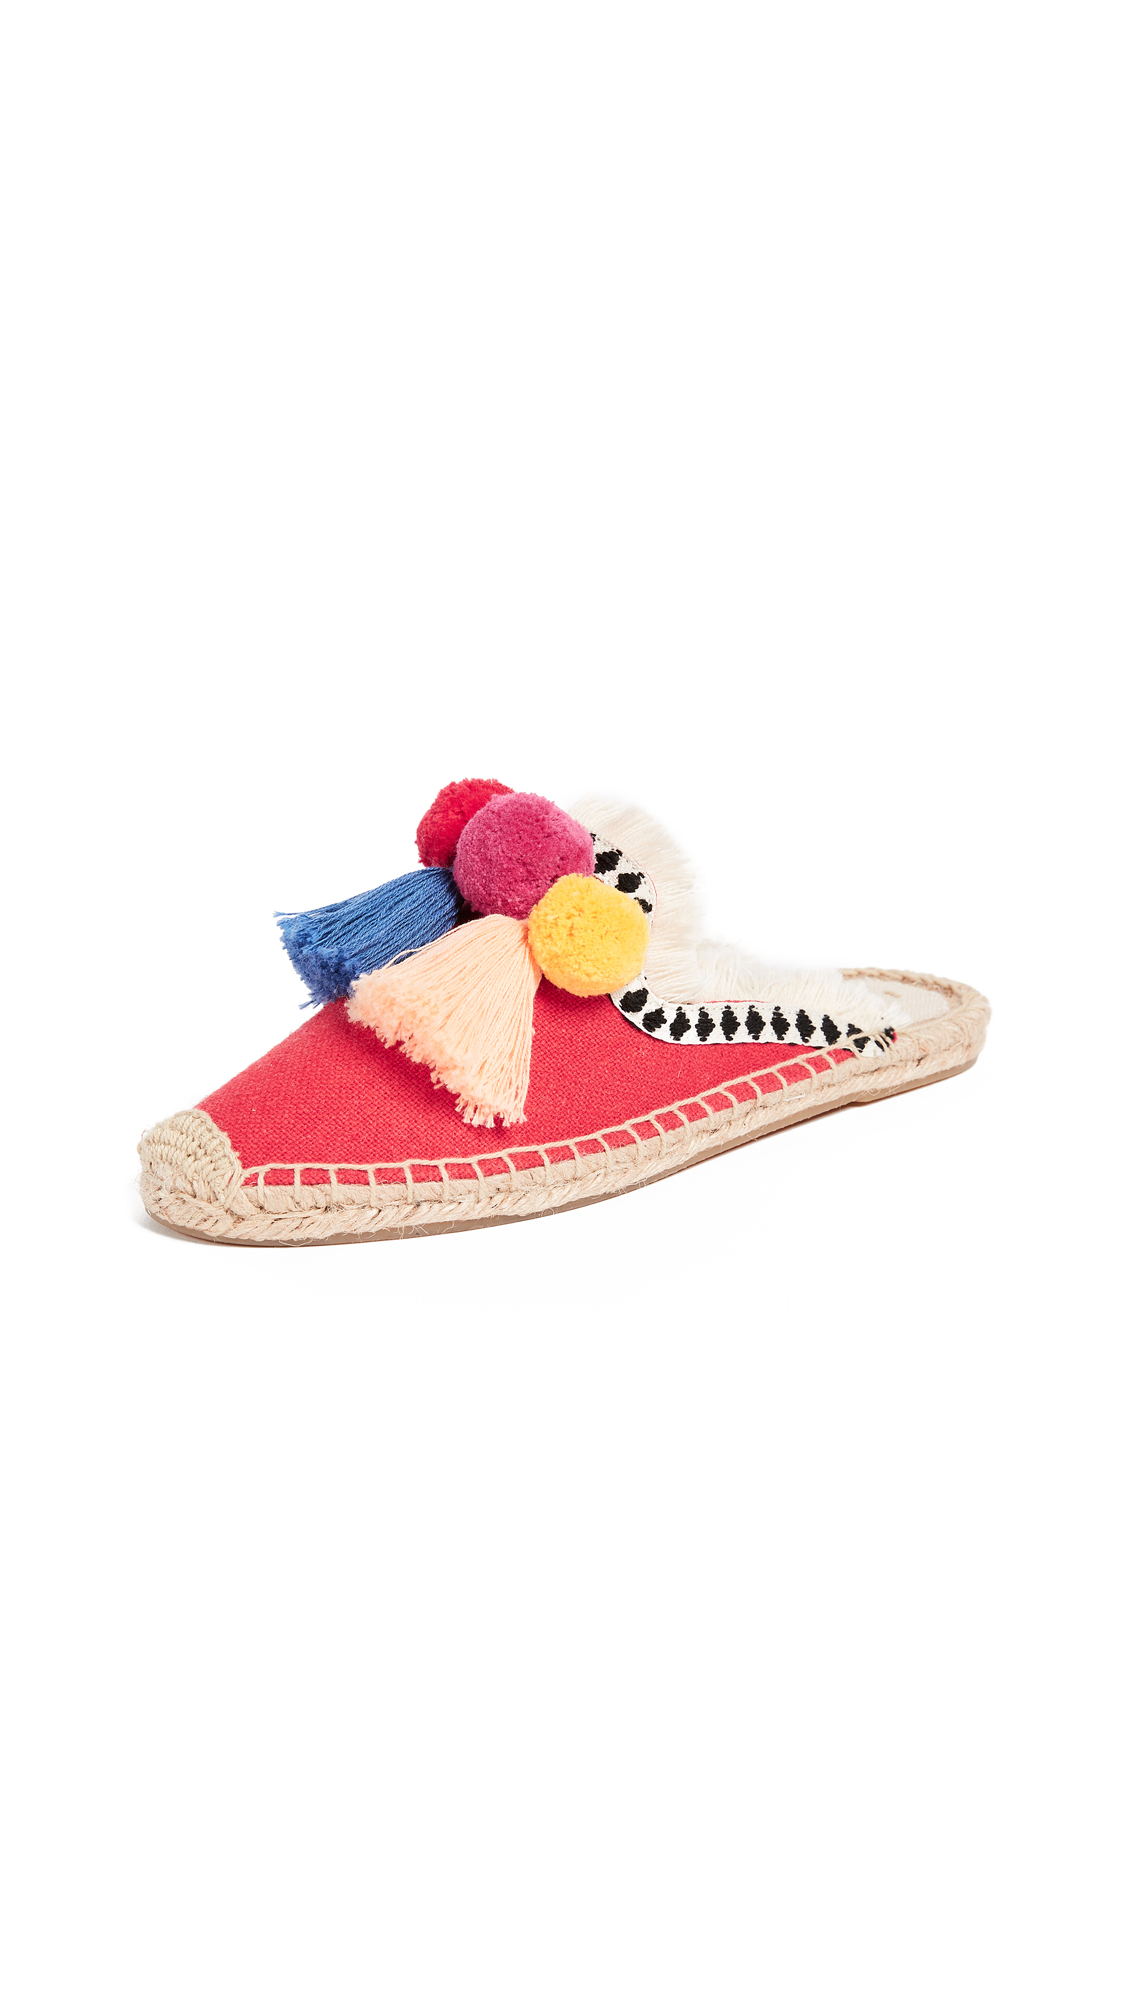 Soludos Frayed Edge Pom Pom Mule - Red Multi